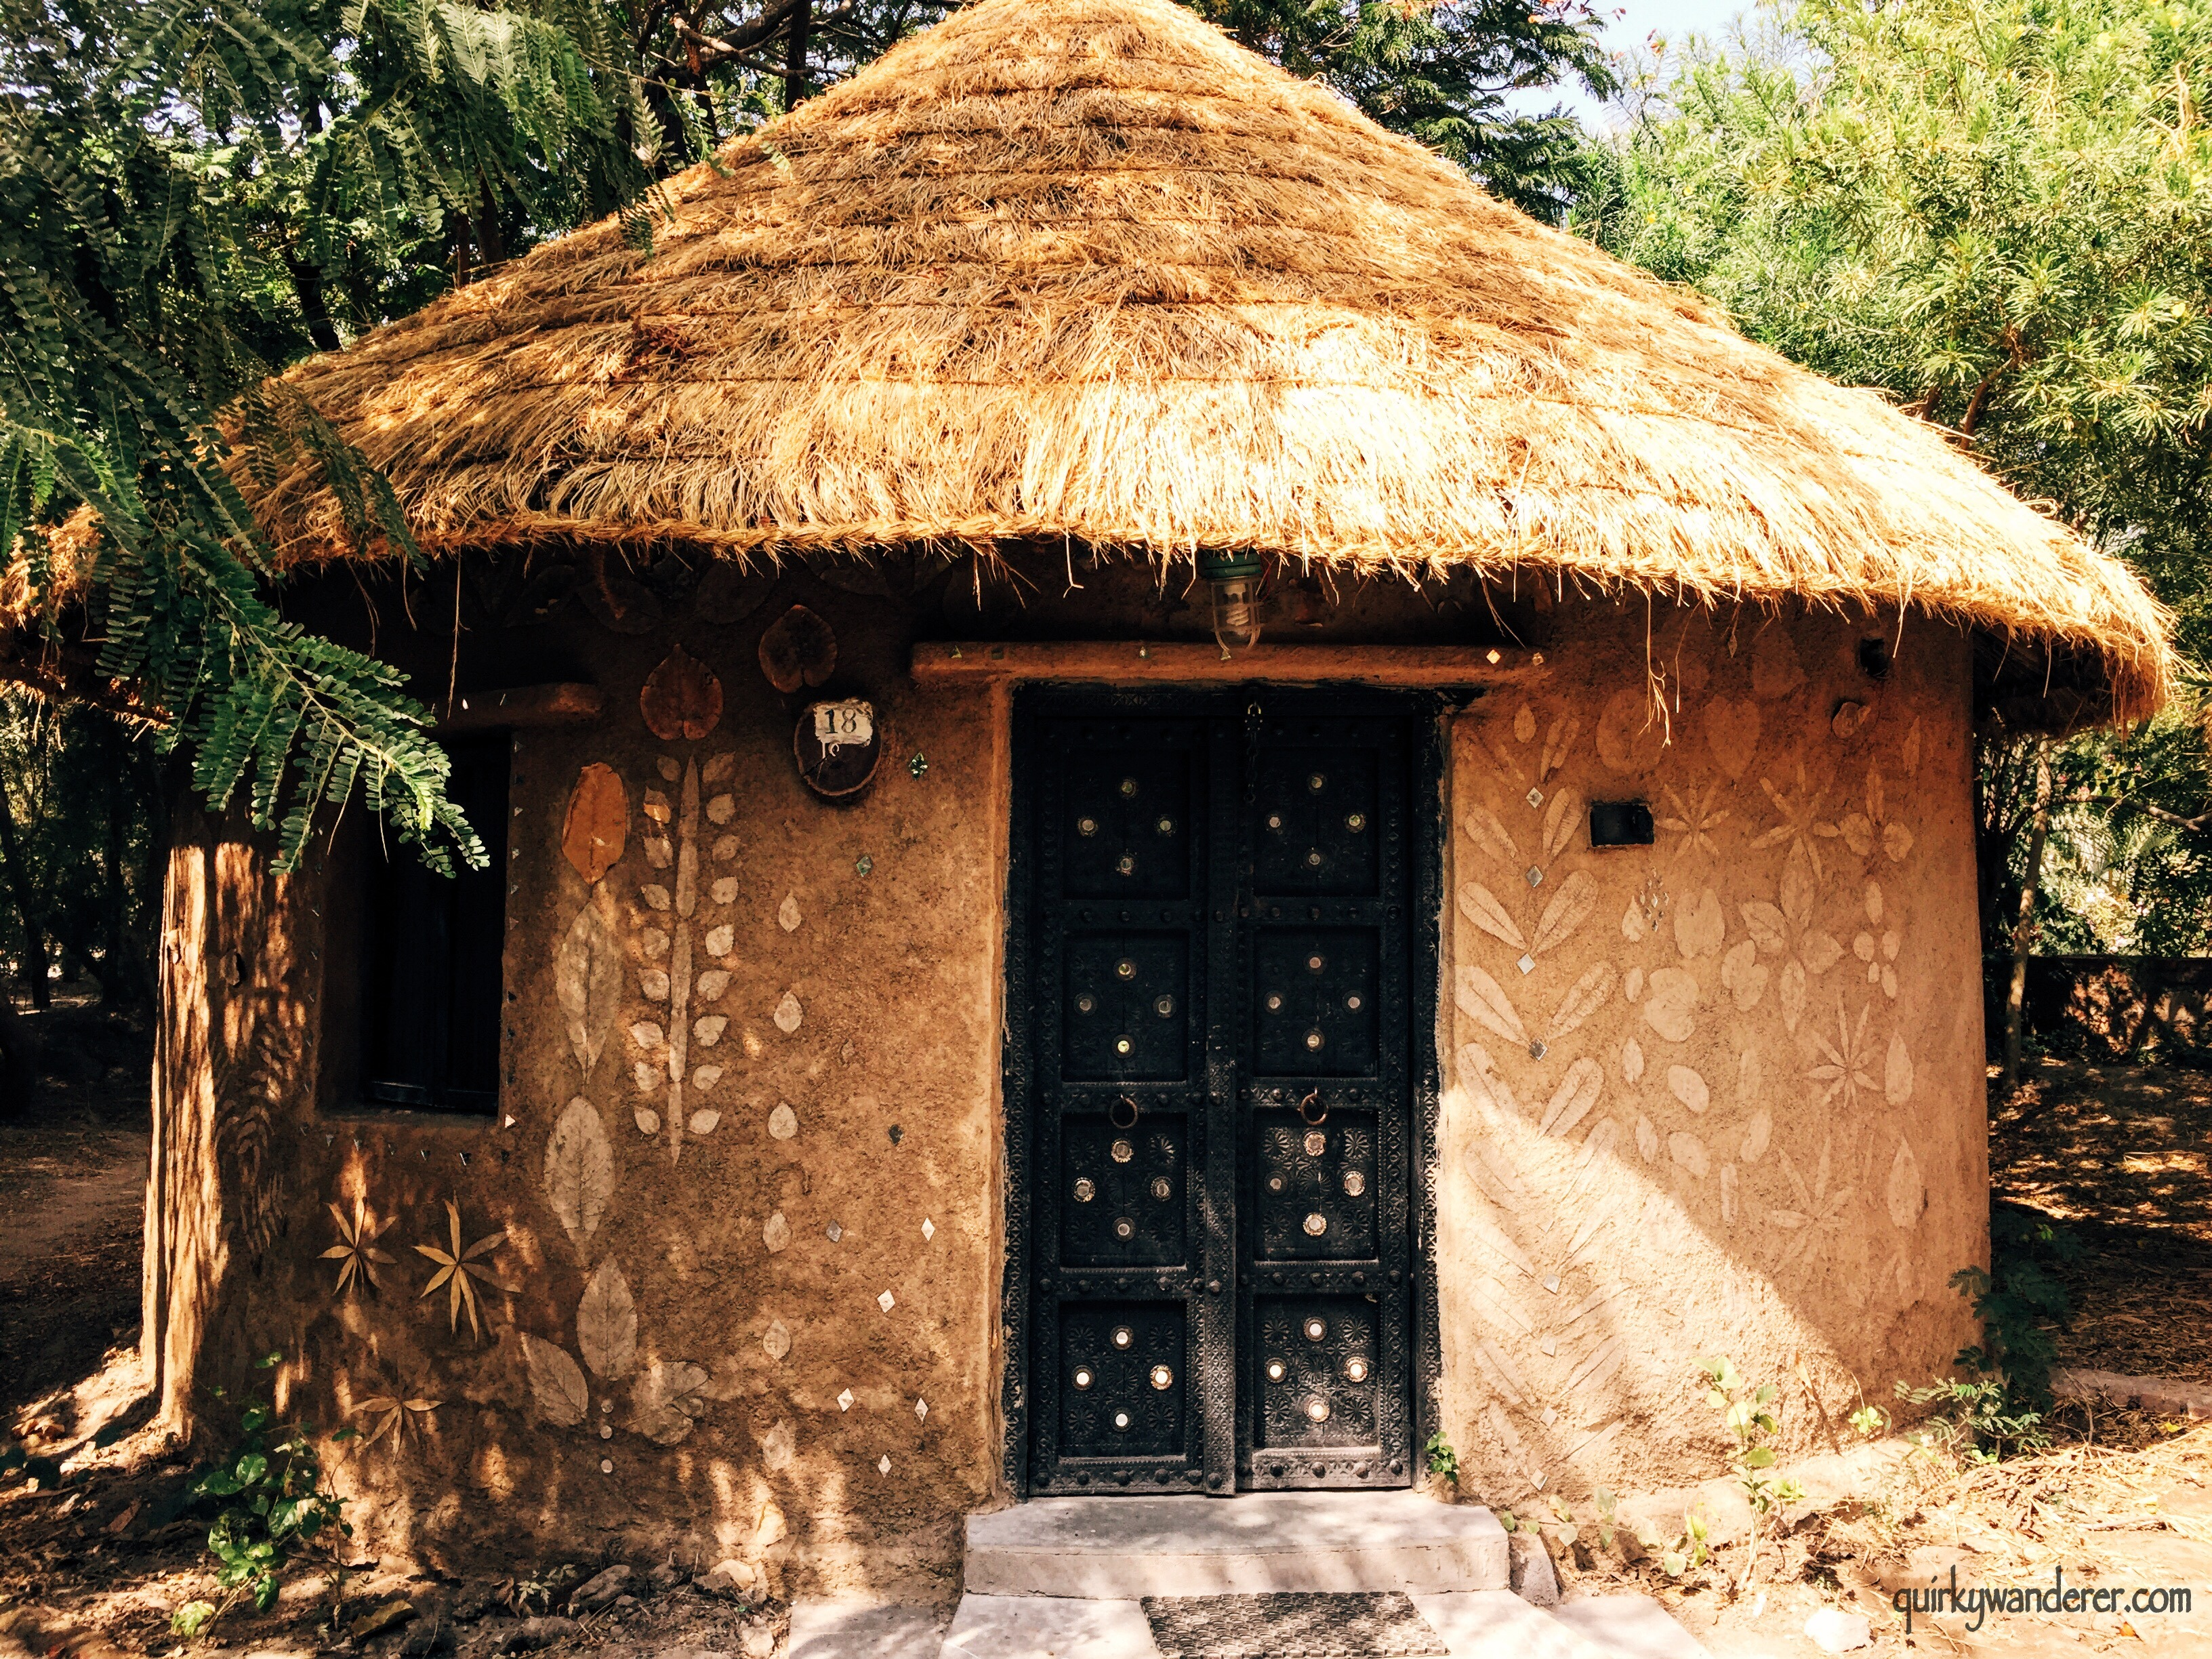 Where to stay in Little Rann of Kutch